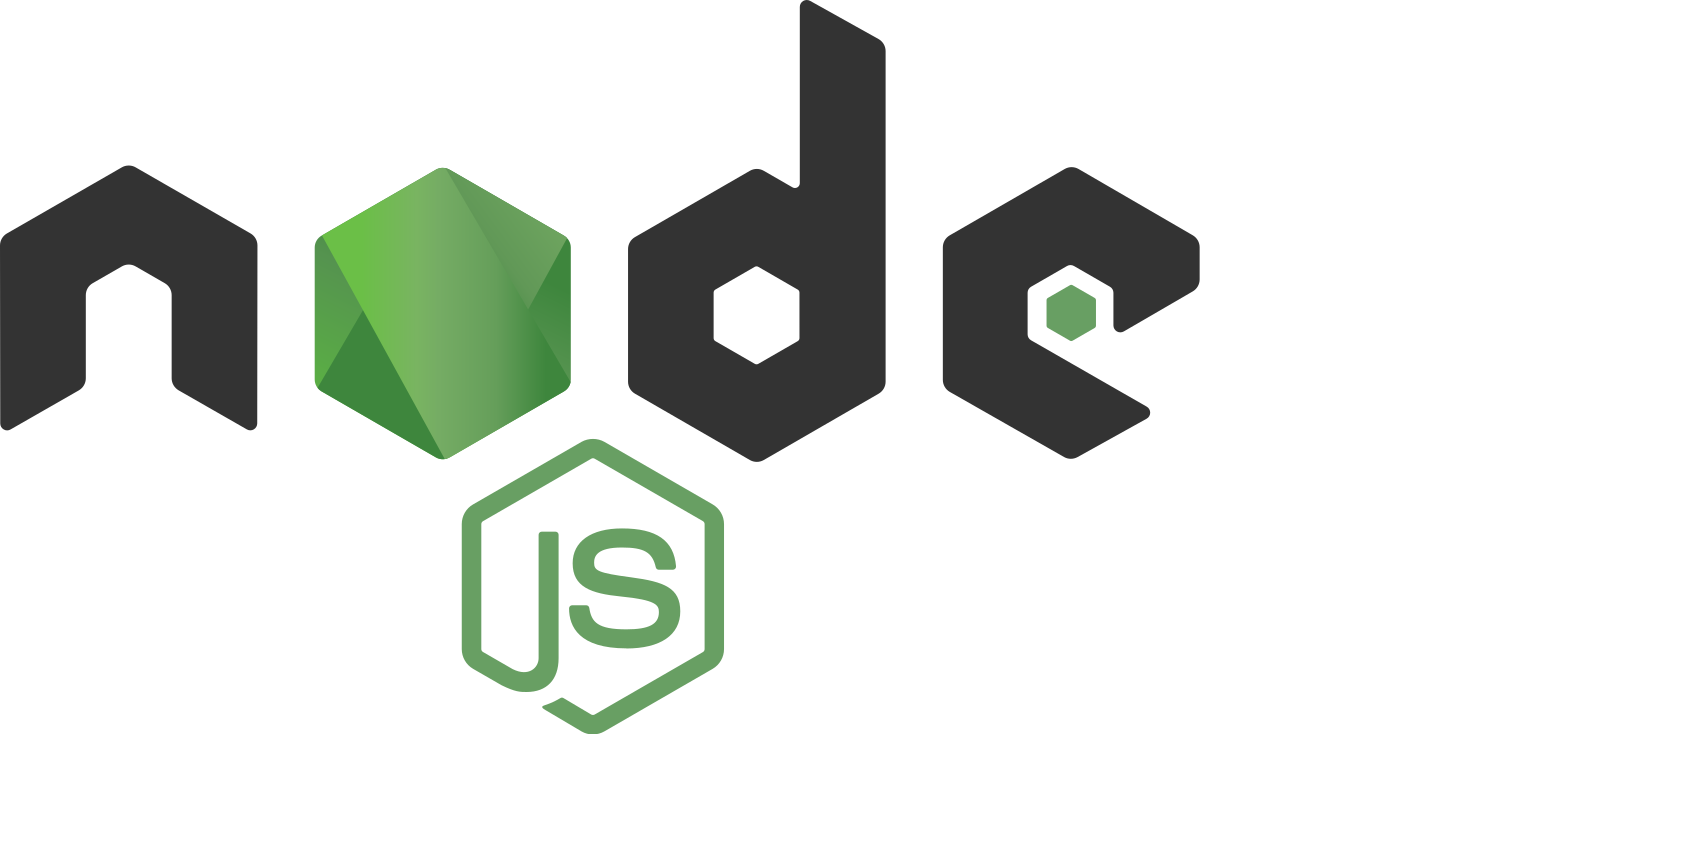 Why You Should Hire aTeamIndia for Your Node JS Project